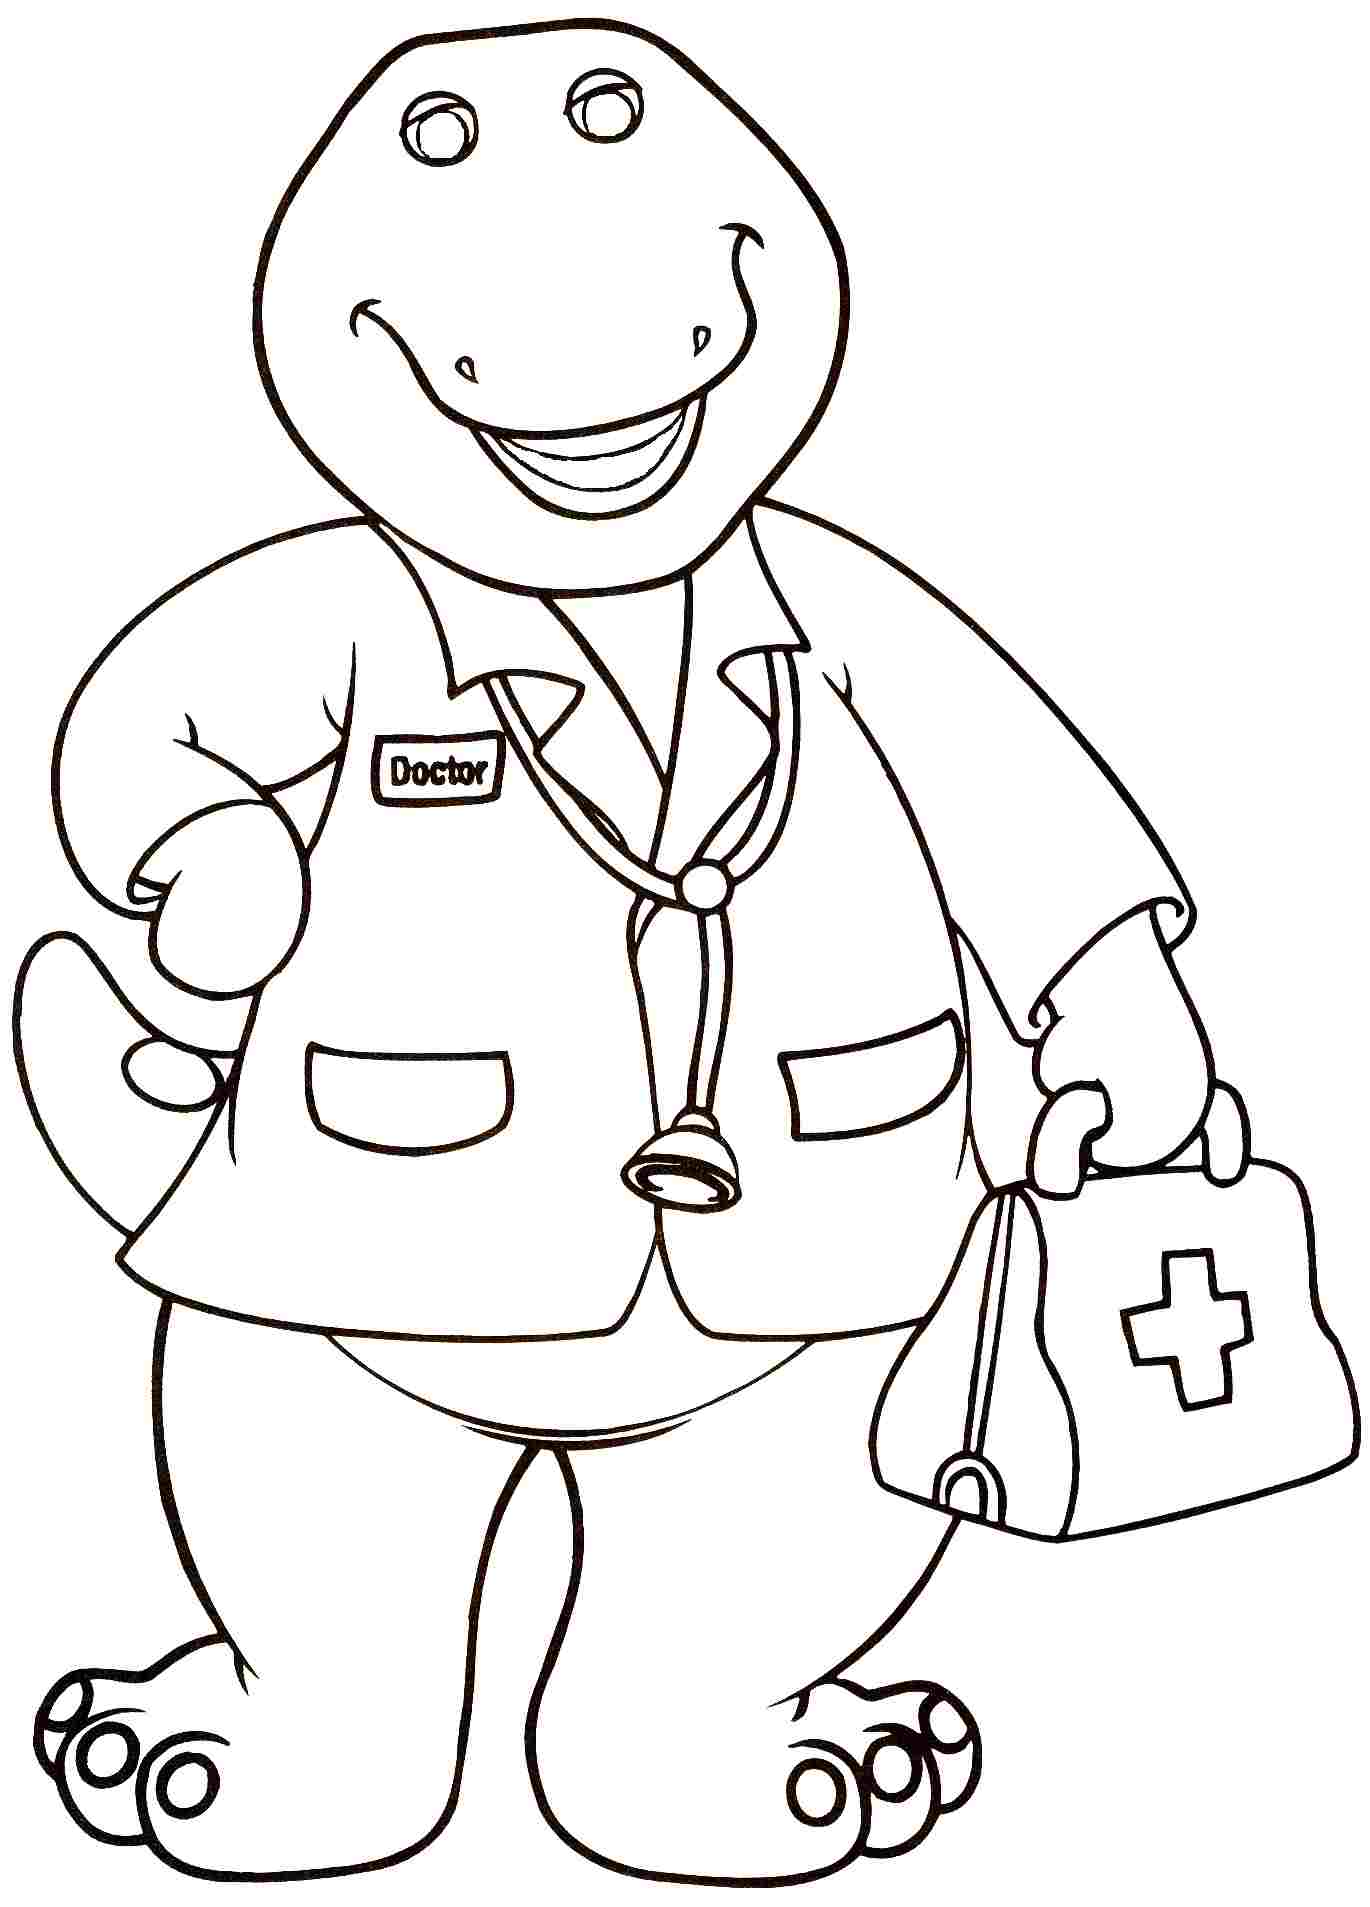 1370x1907 Lovely Barney Coloring Pages On Line Drawings With Barney